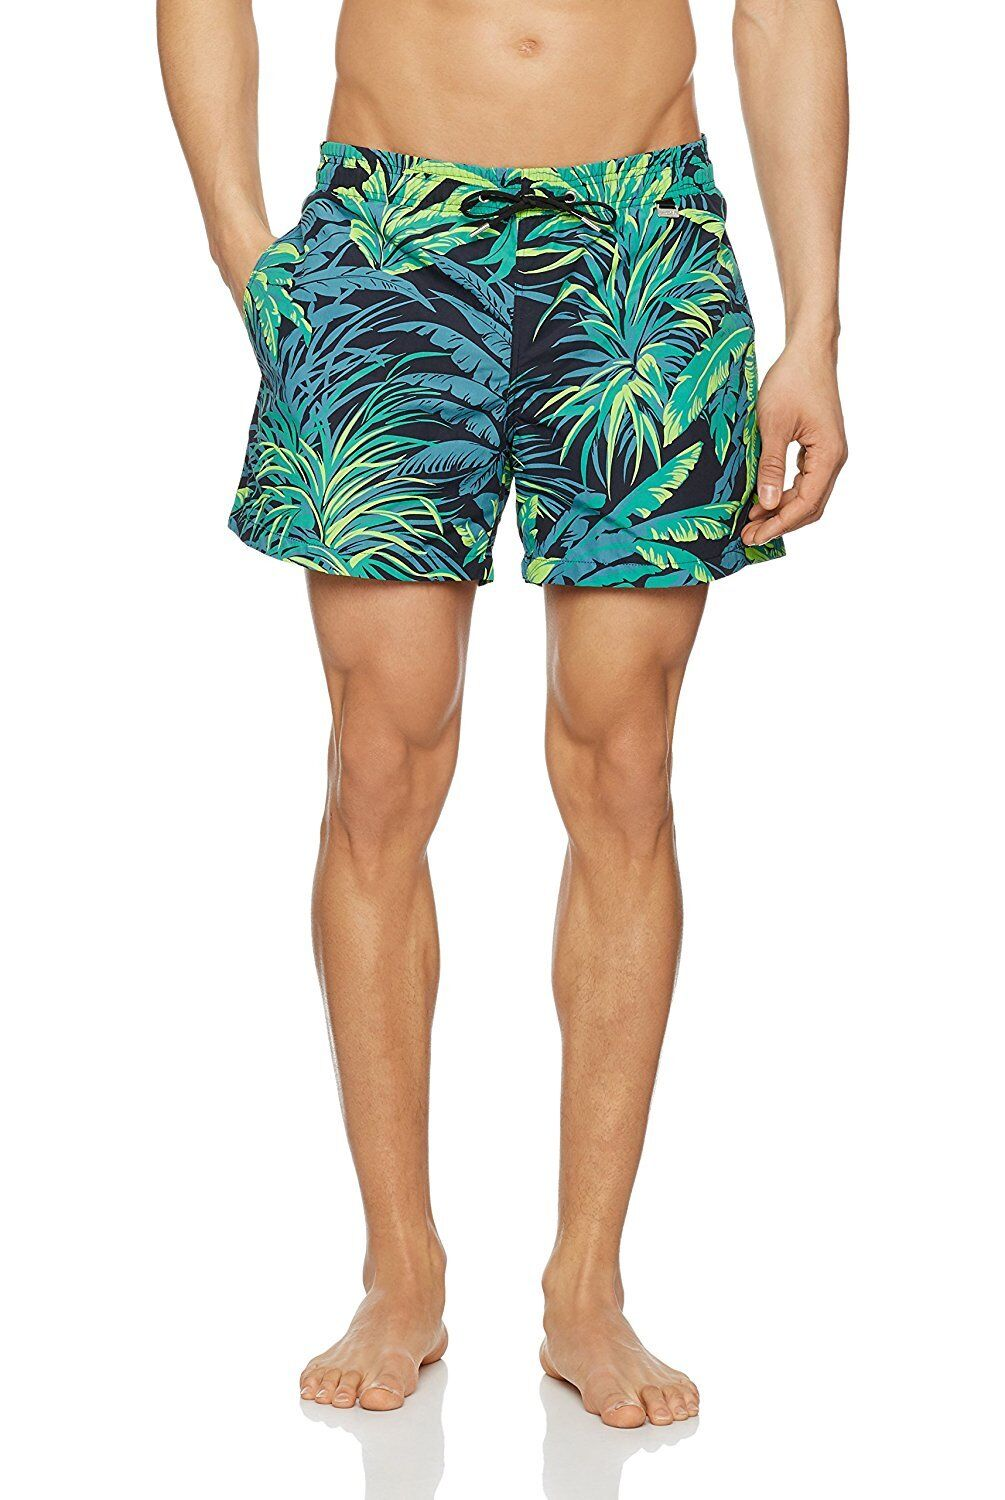 HOM swimming shorts board patterned lined Palmier beach pool sexy trunks summer